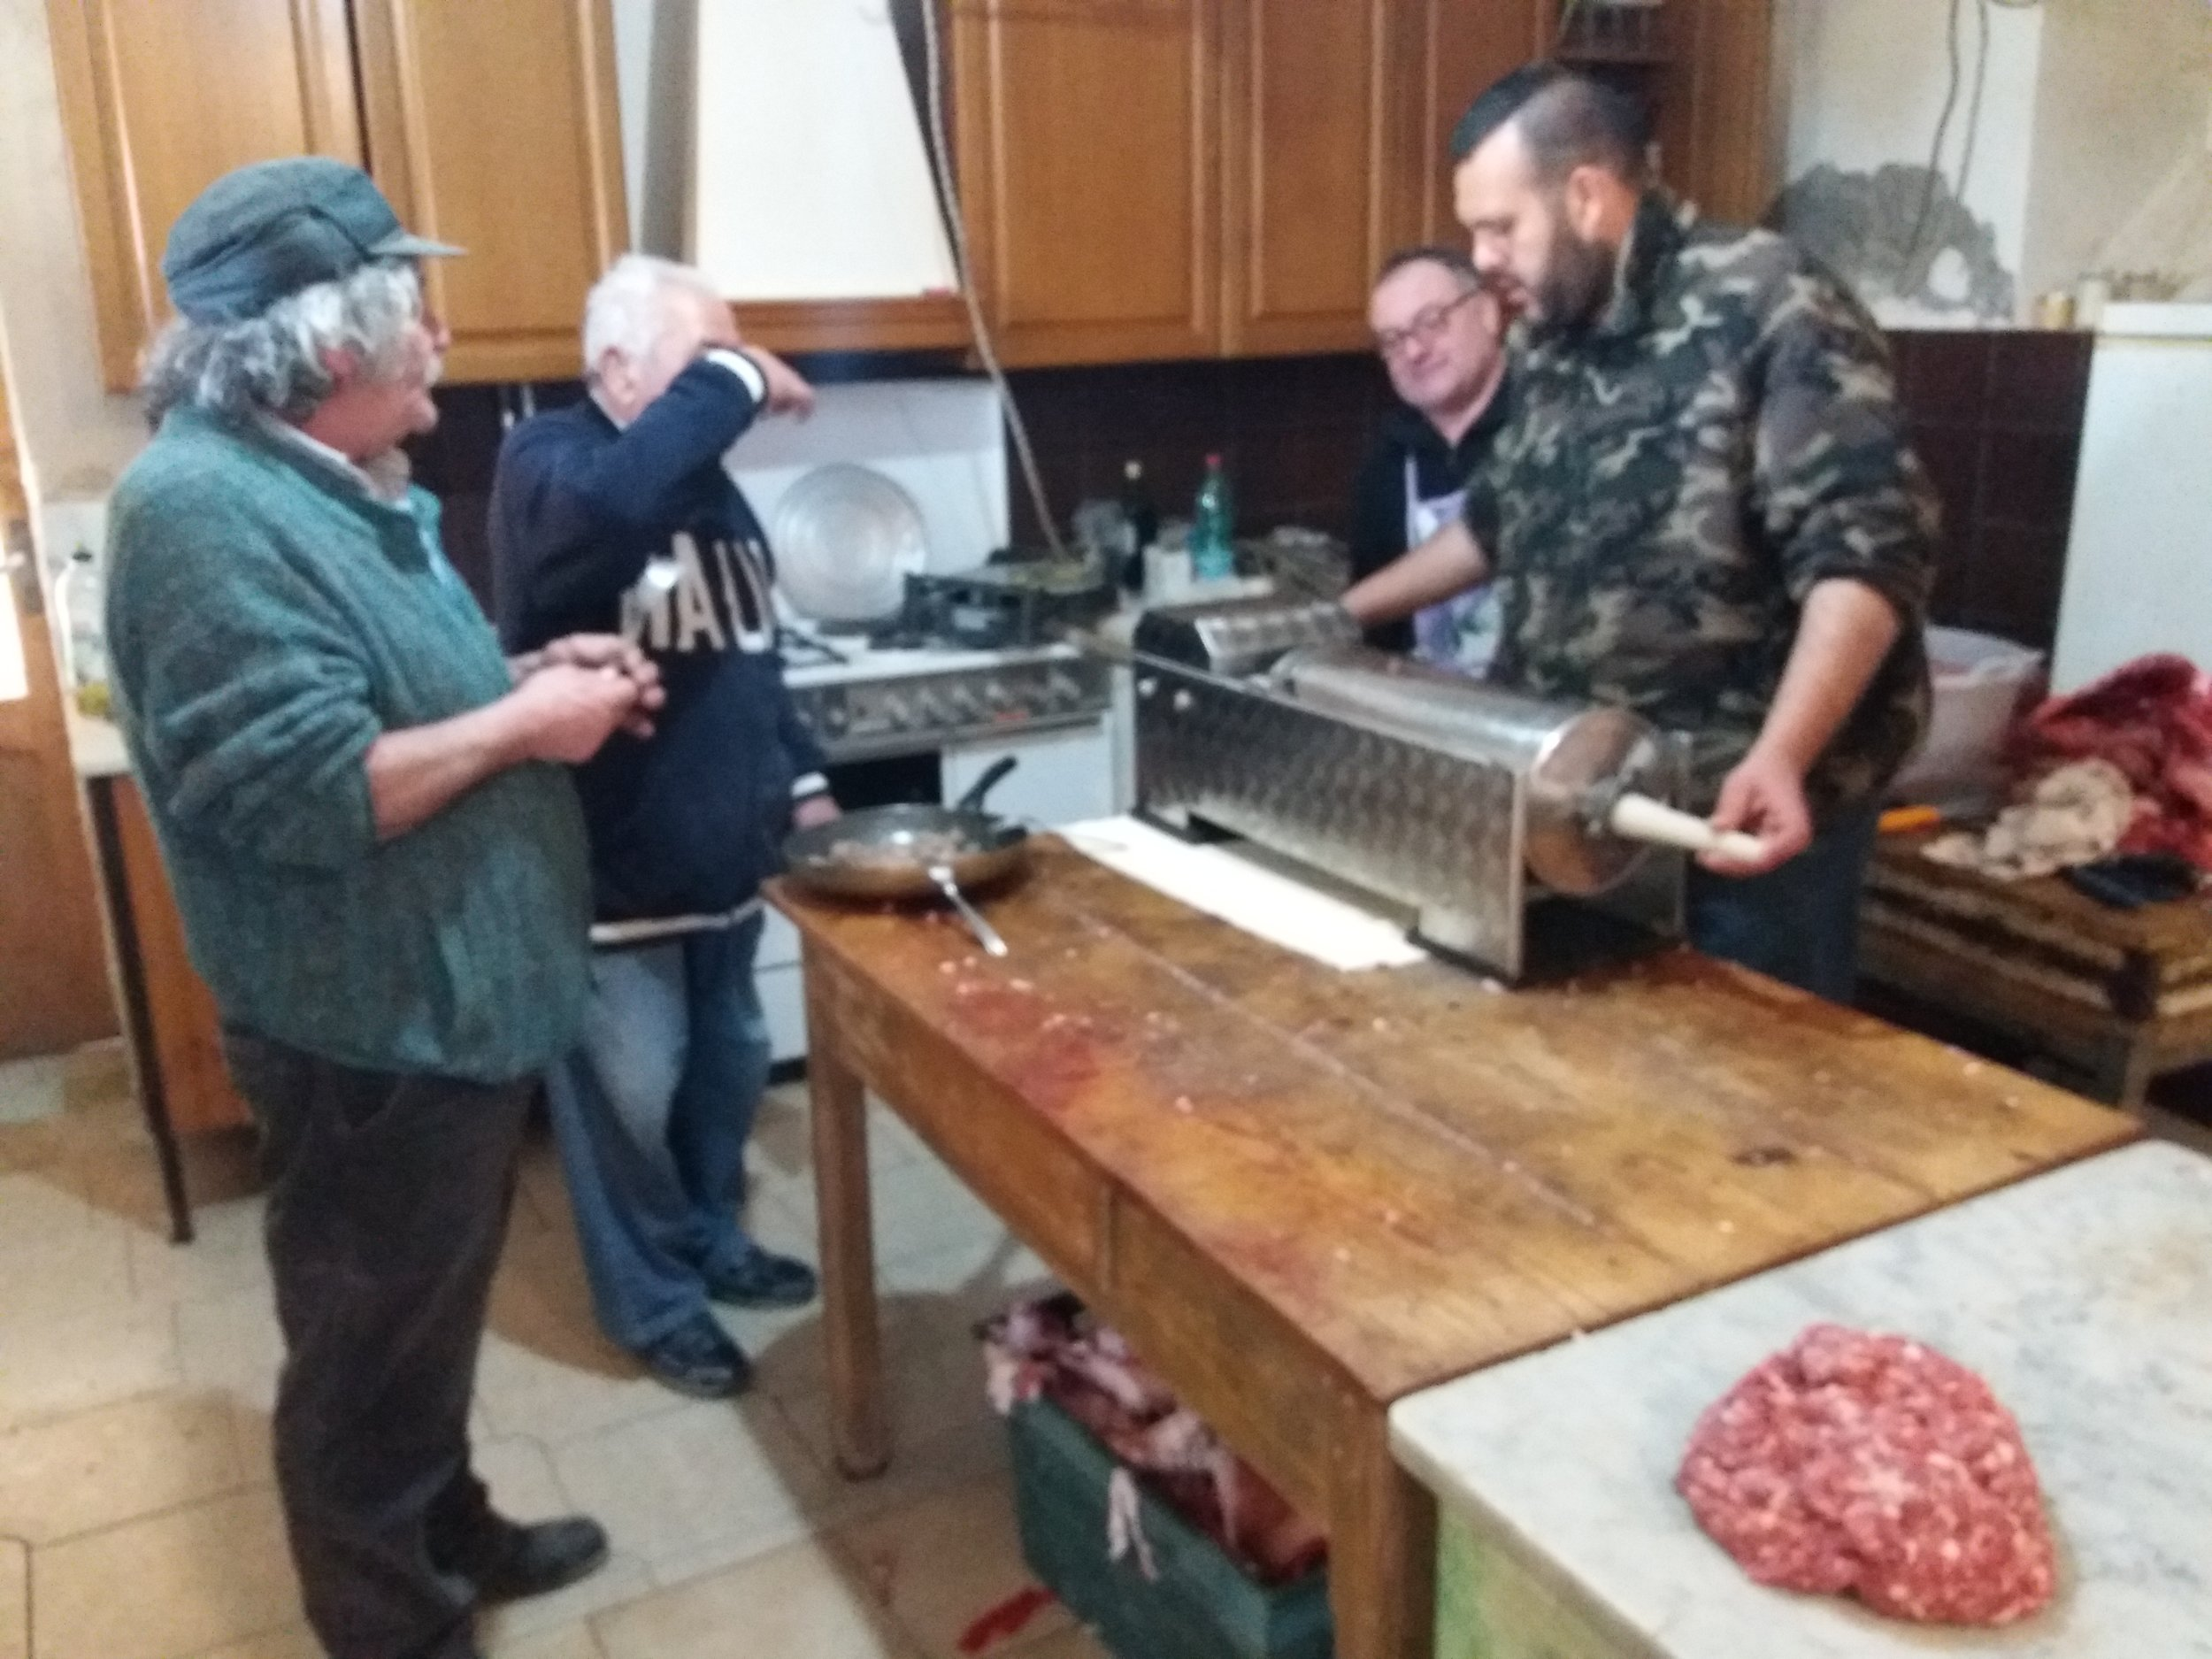 The guys making sausages.